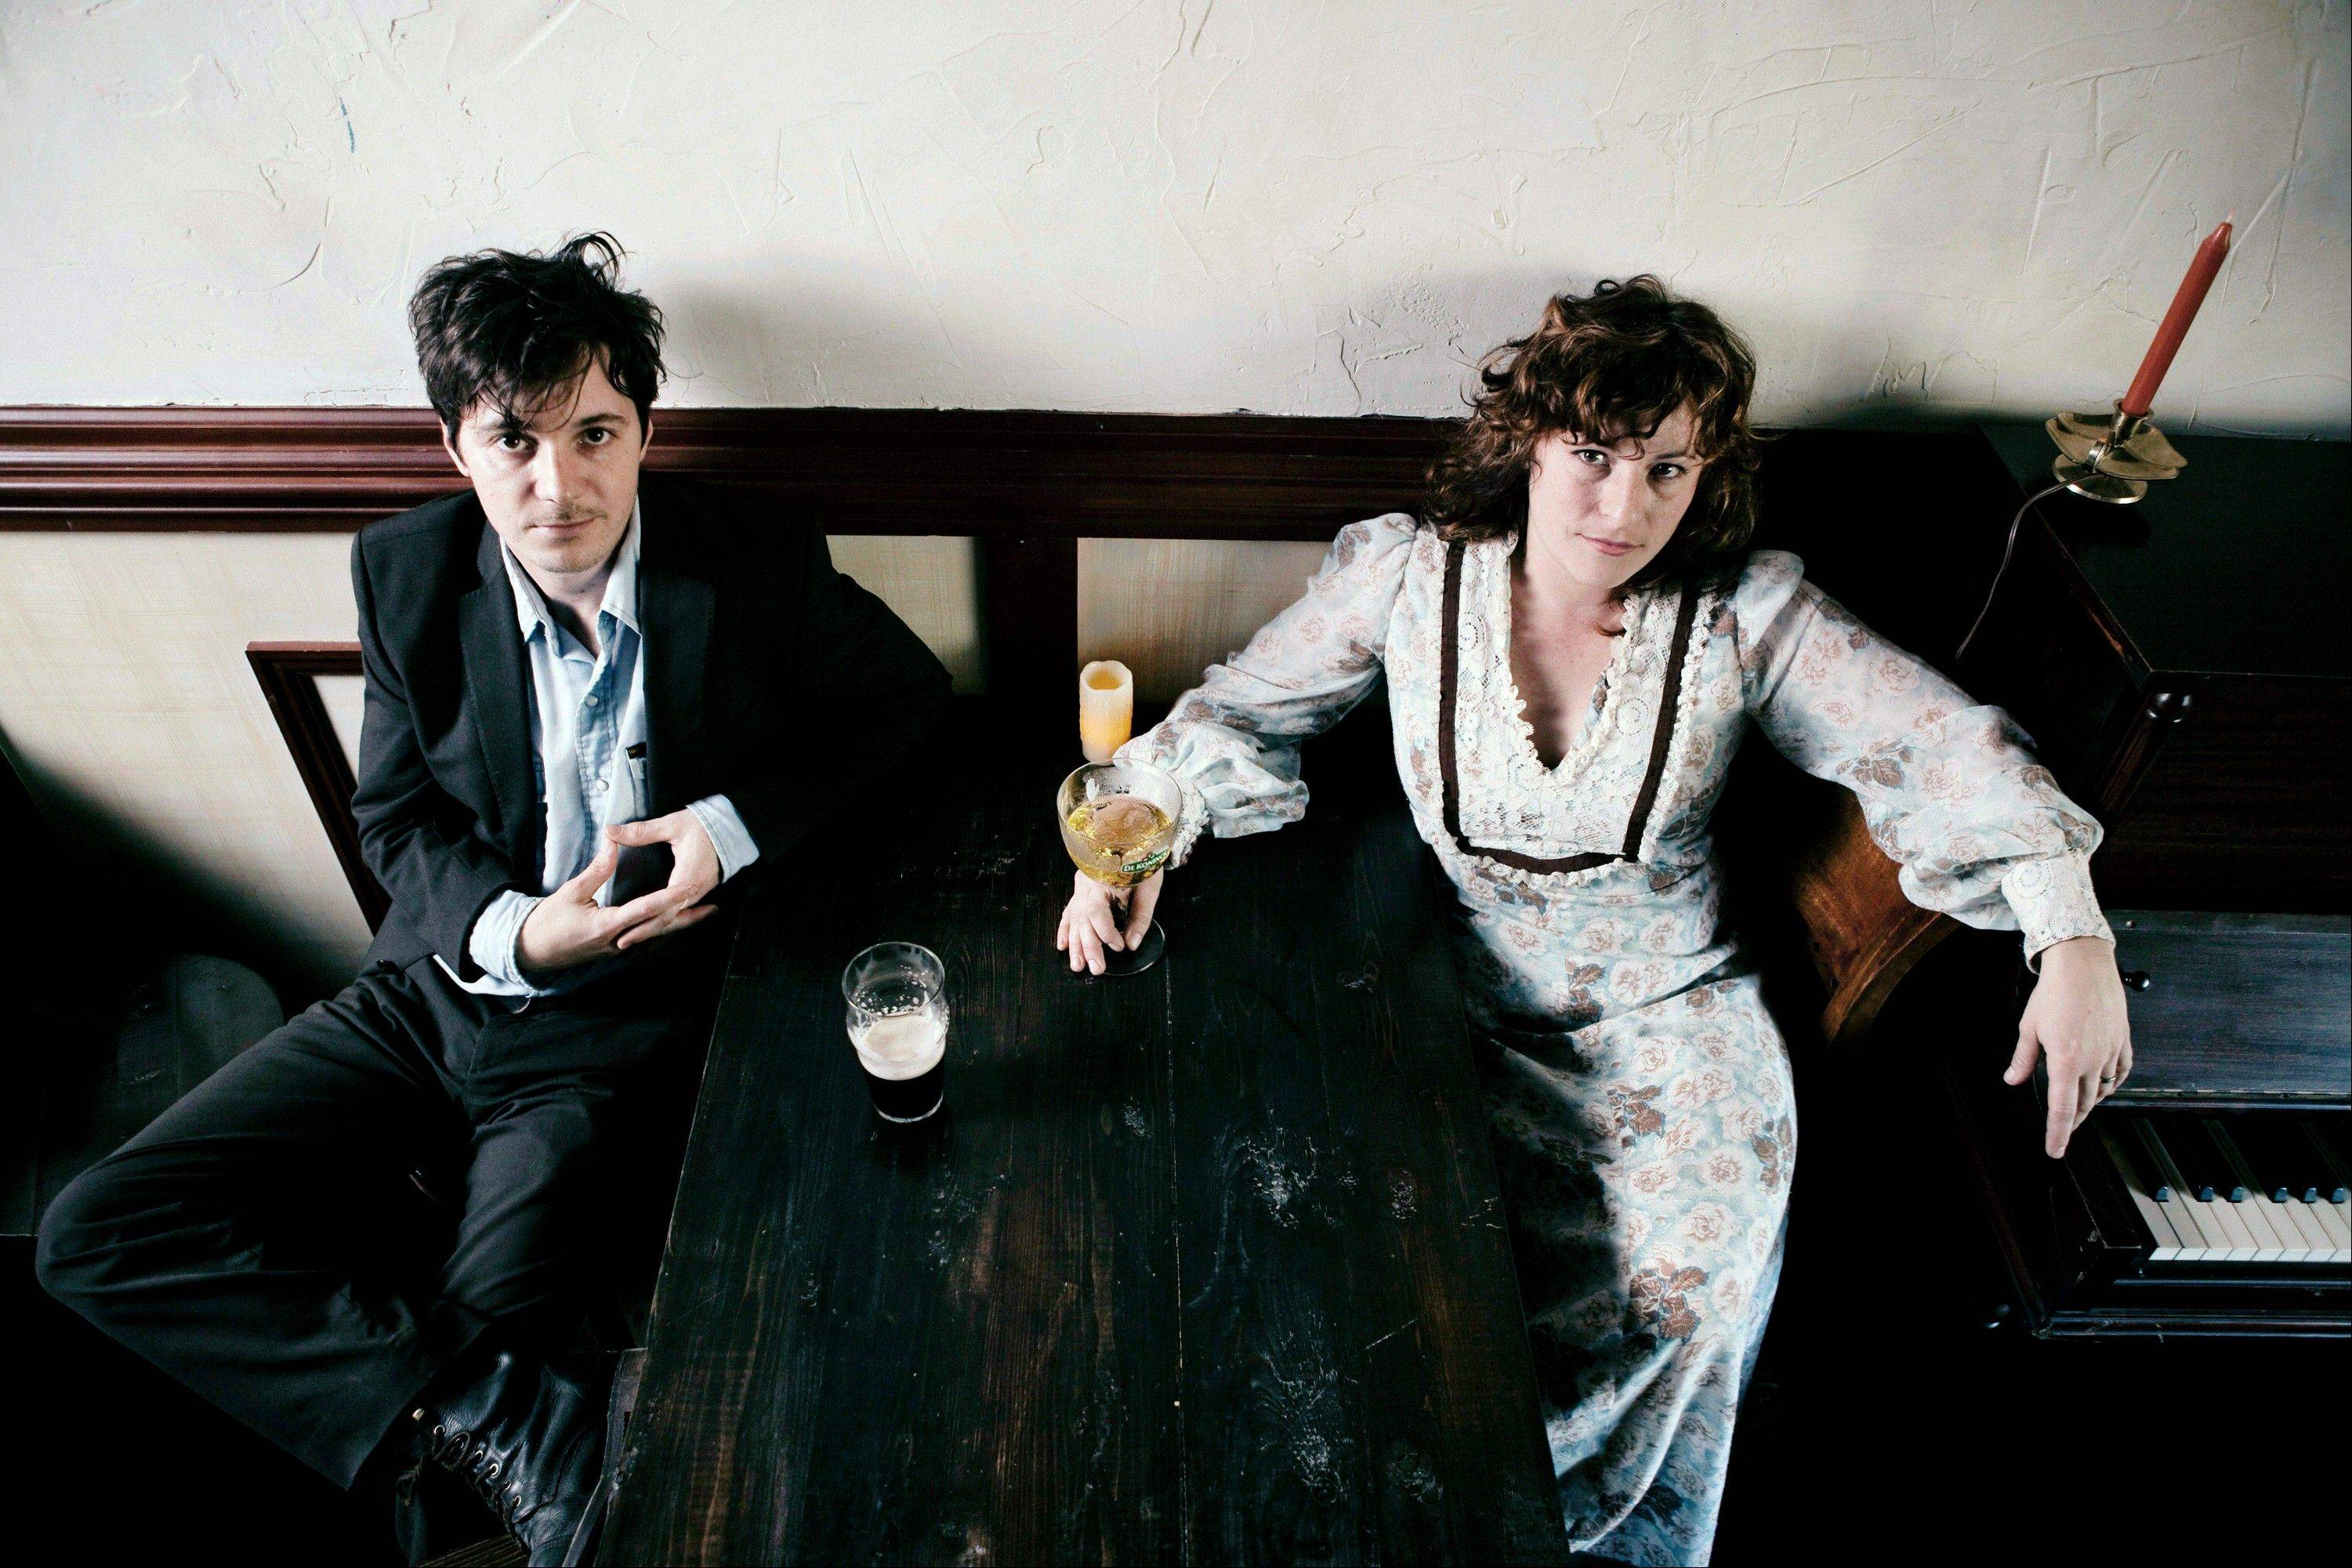 Michael Trent, left, and Cary Ann Hearst from the band Shovels & Rope.